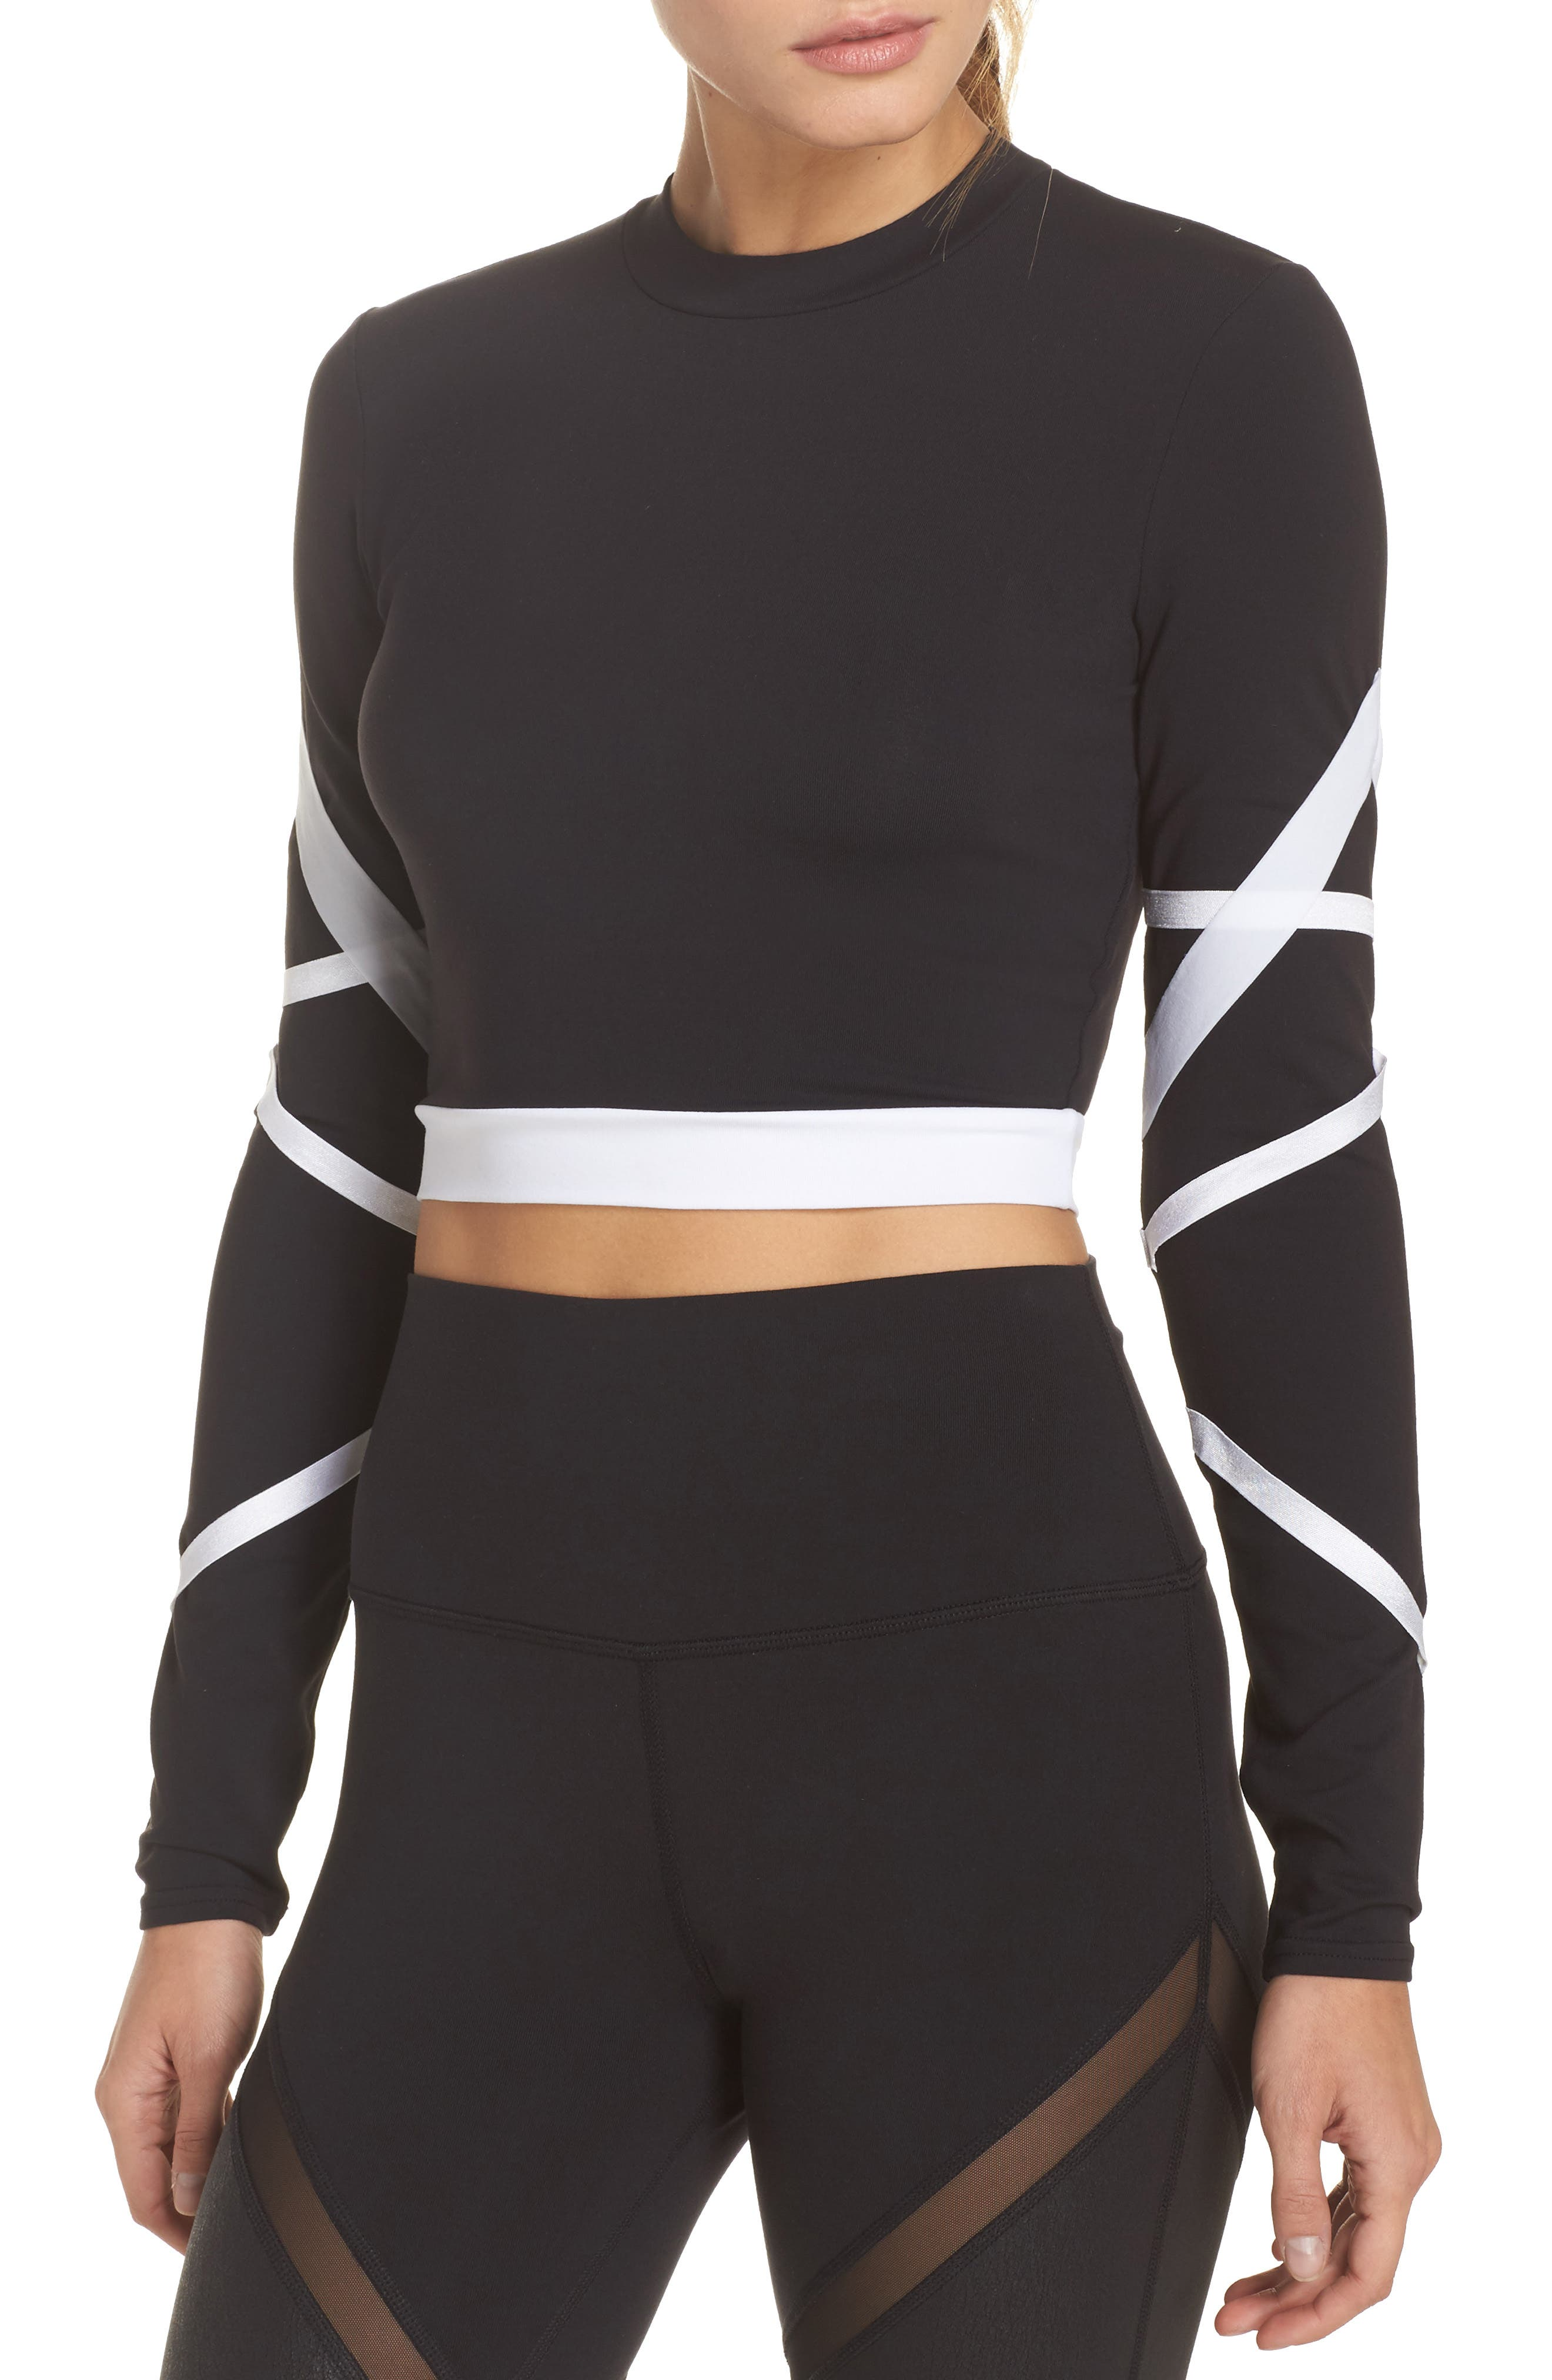 Tribe Long Sleeve Top,                         Main,                         color, Black/ White